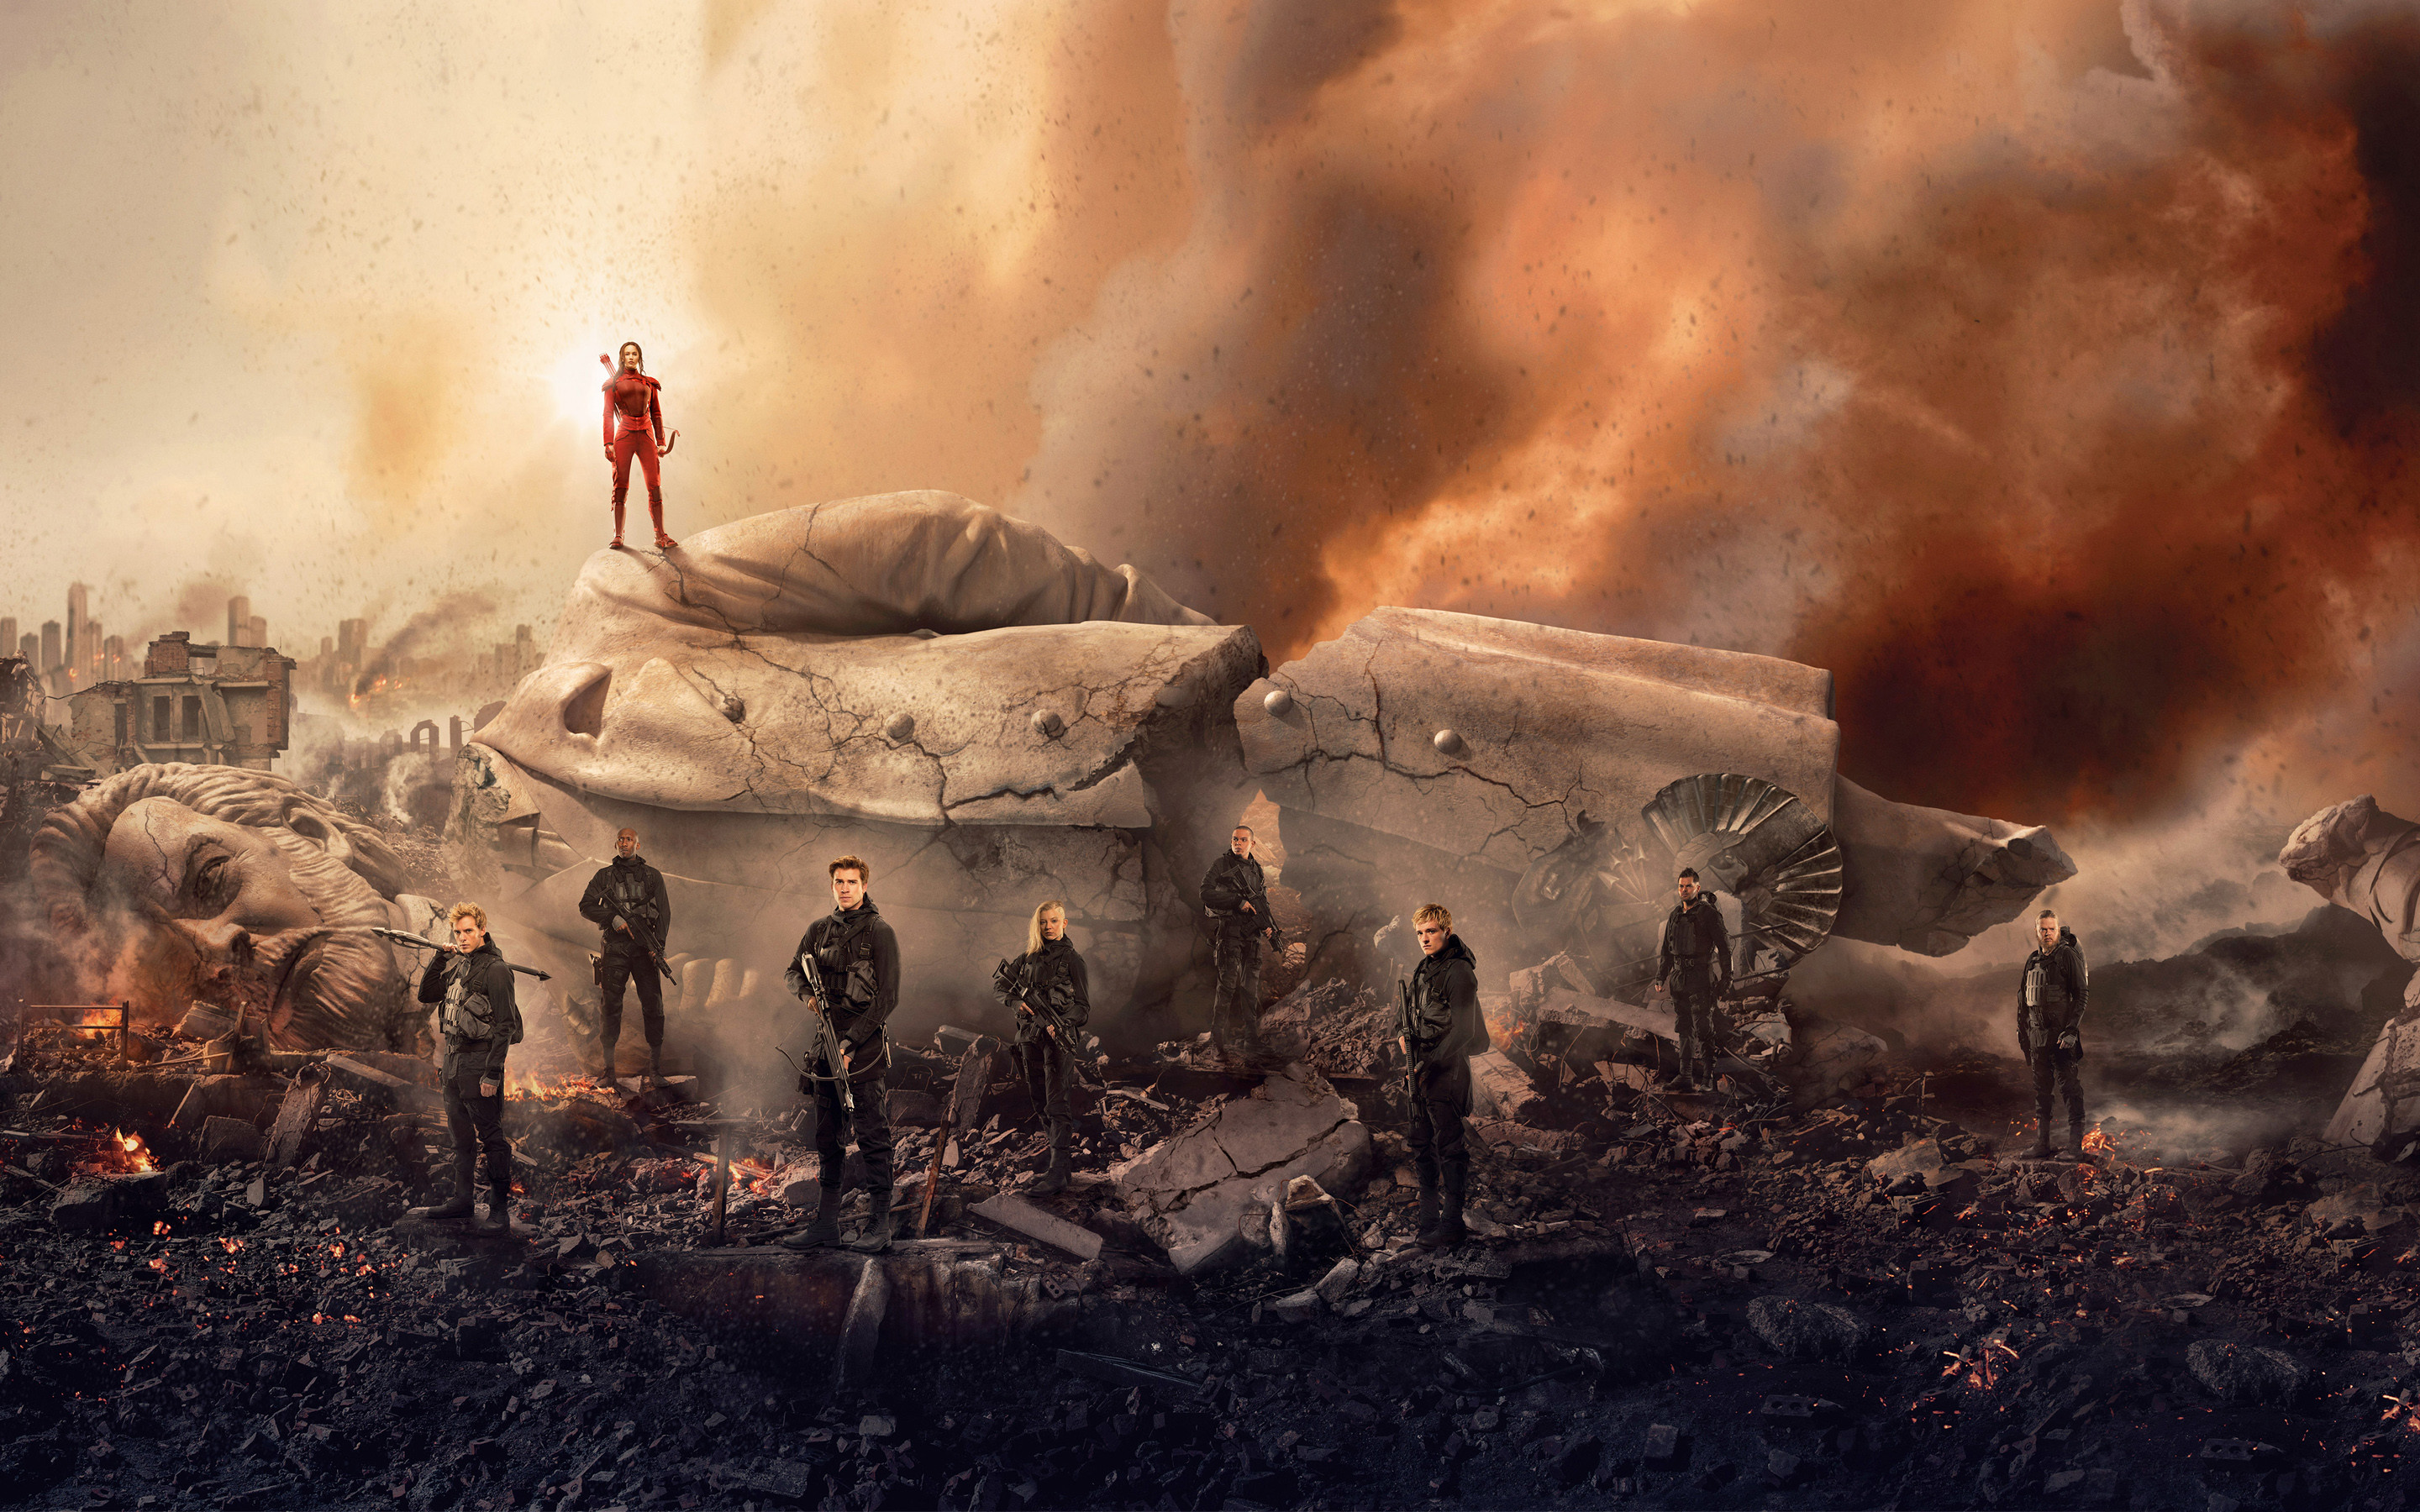 2880x1800 The Hunger Games Mockingjay Part 2 2015